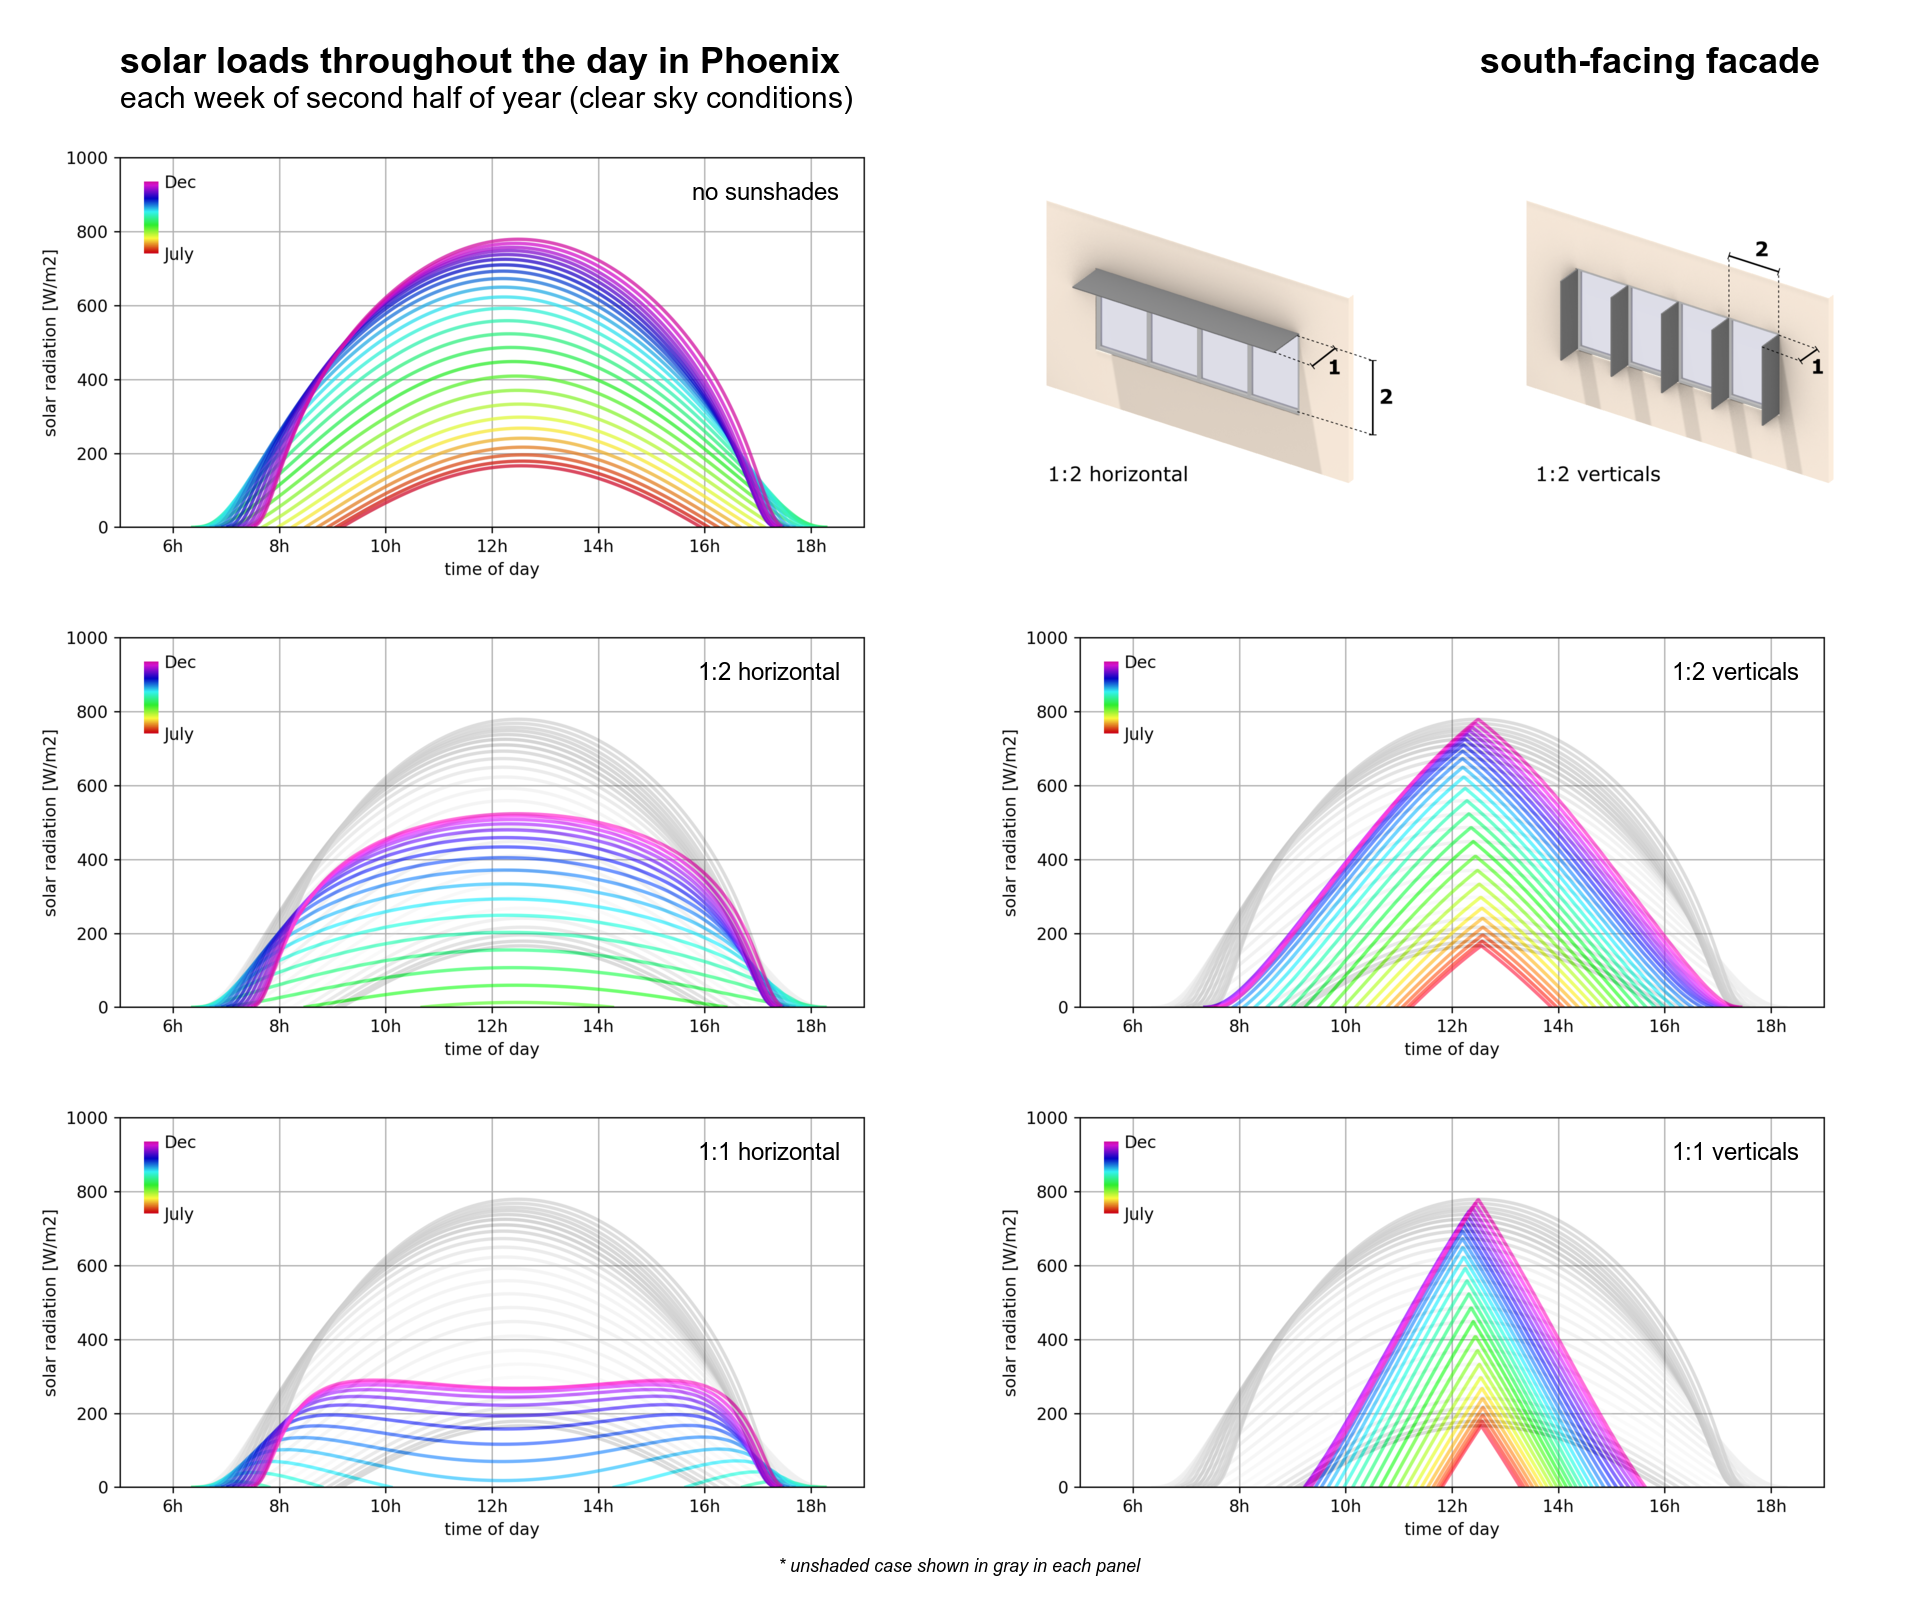 What is the impact of sunshade sizing on facade solar loads?